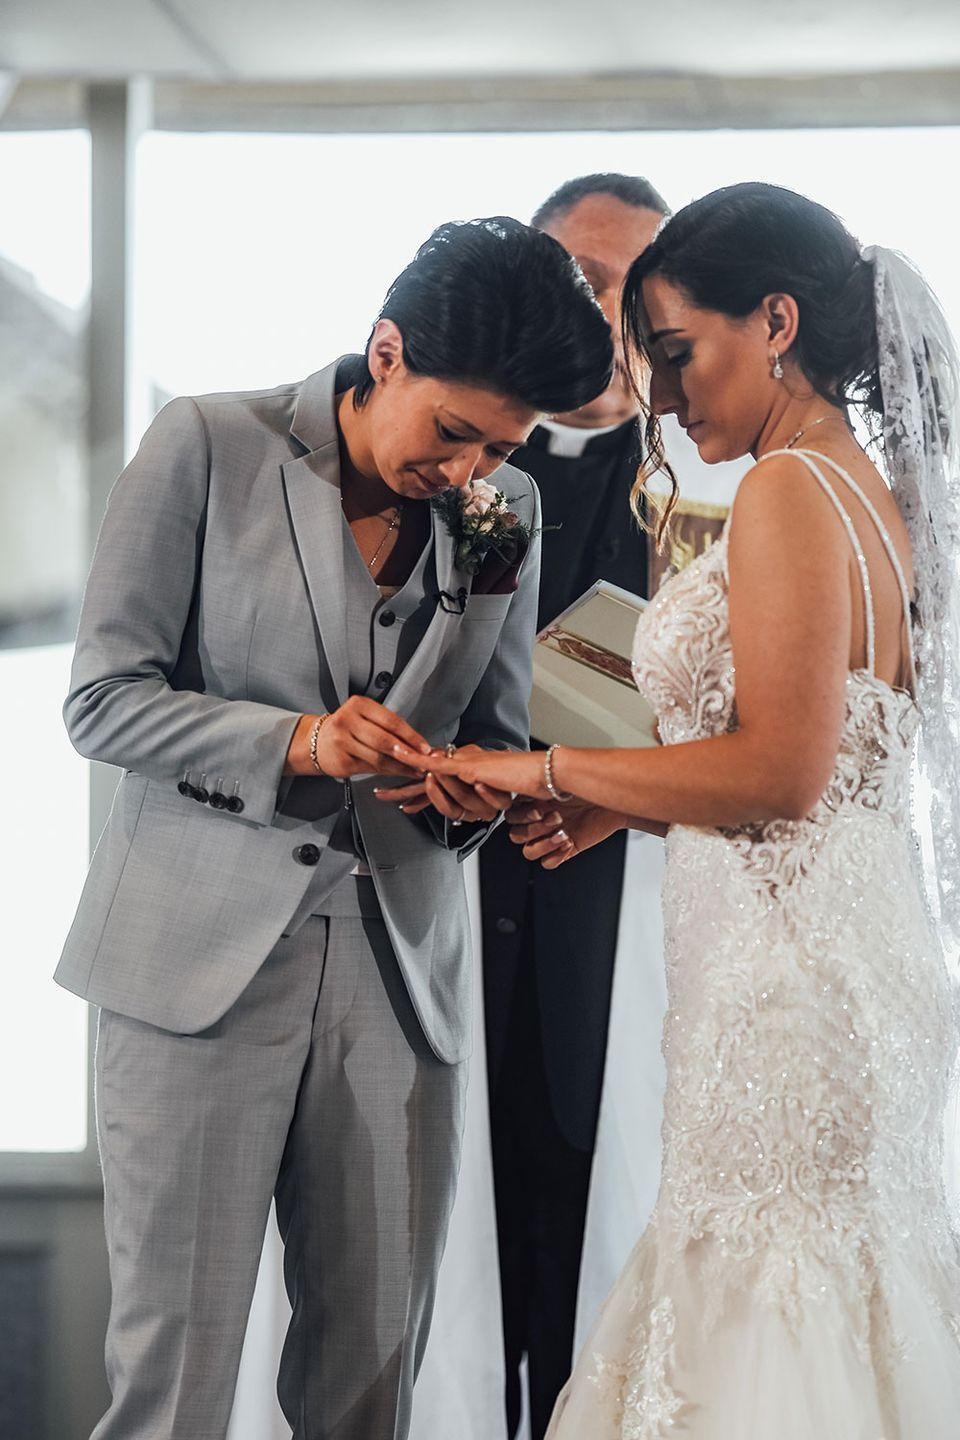 <p>Jackie and Lisa hit it off right away after meeting at a birthday party on the Jersey Shore. They got engaged on a trip to Hawaii and married in May 2019.</p>